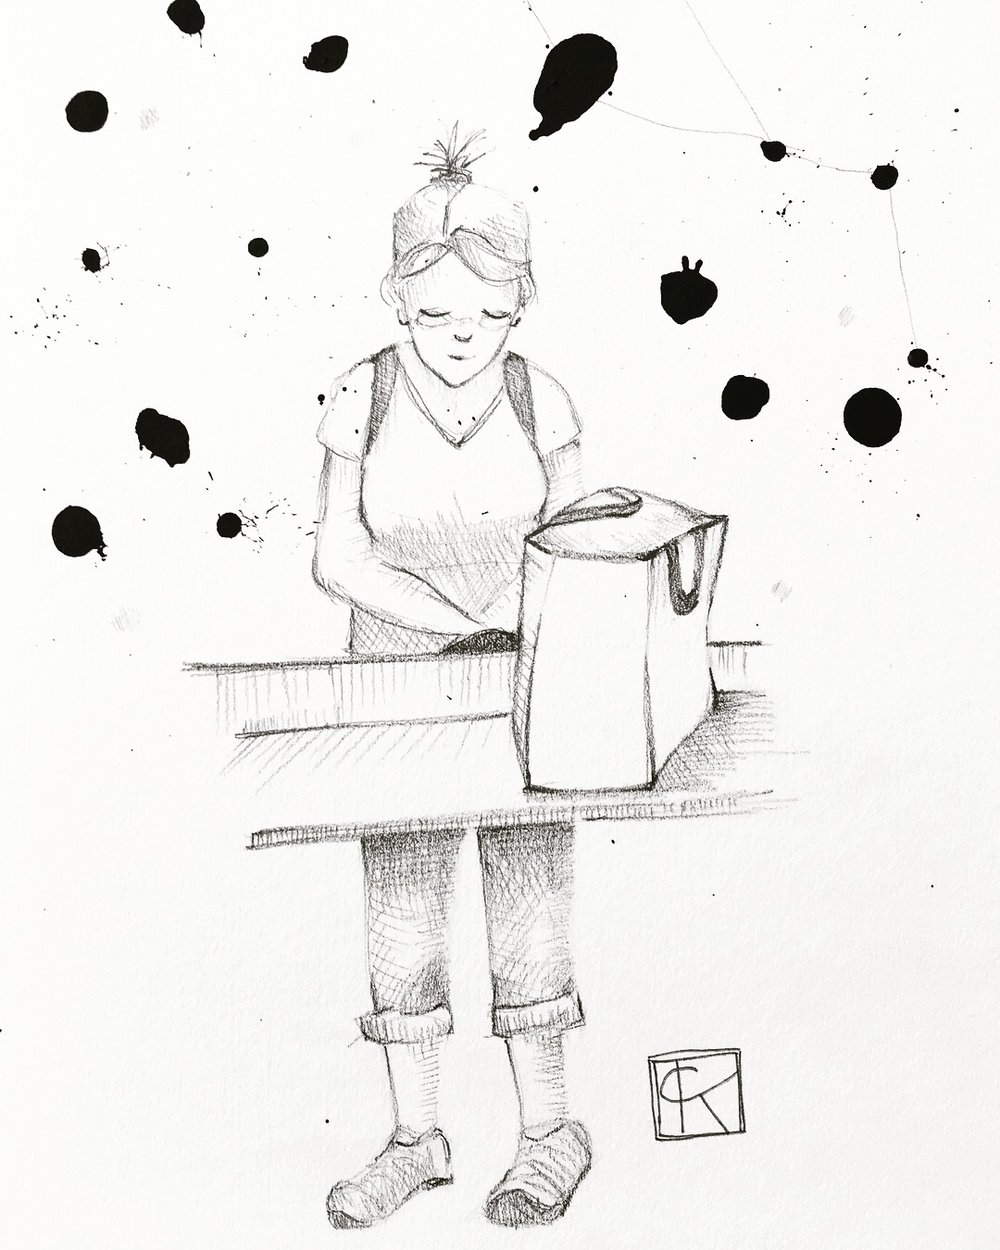 7x10in pencil and ink on paper, an illustration of a late visit to the laundromat